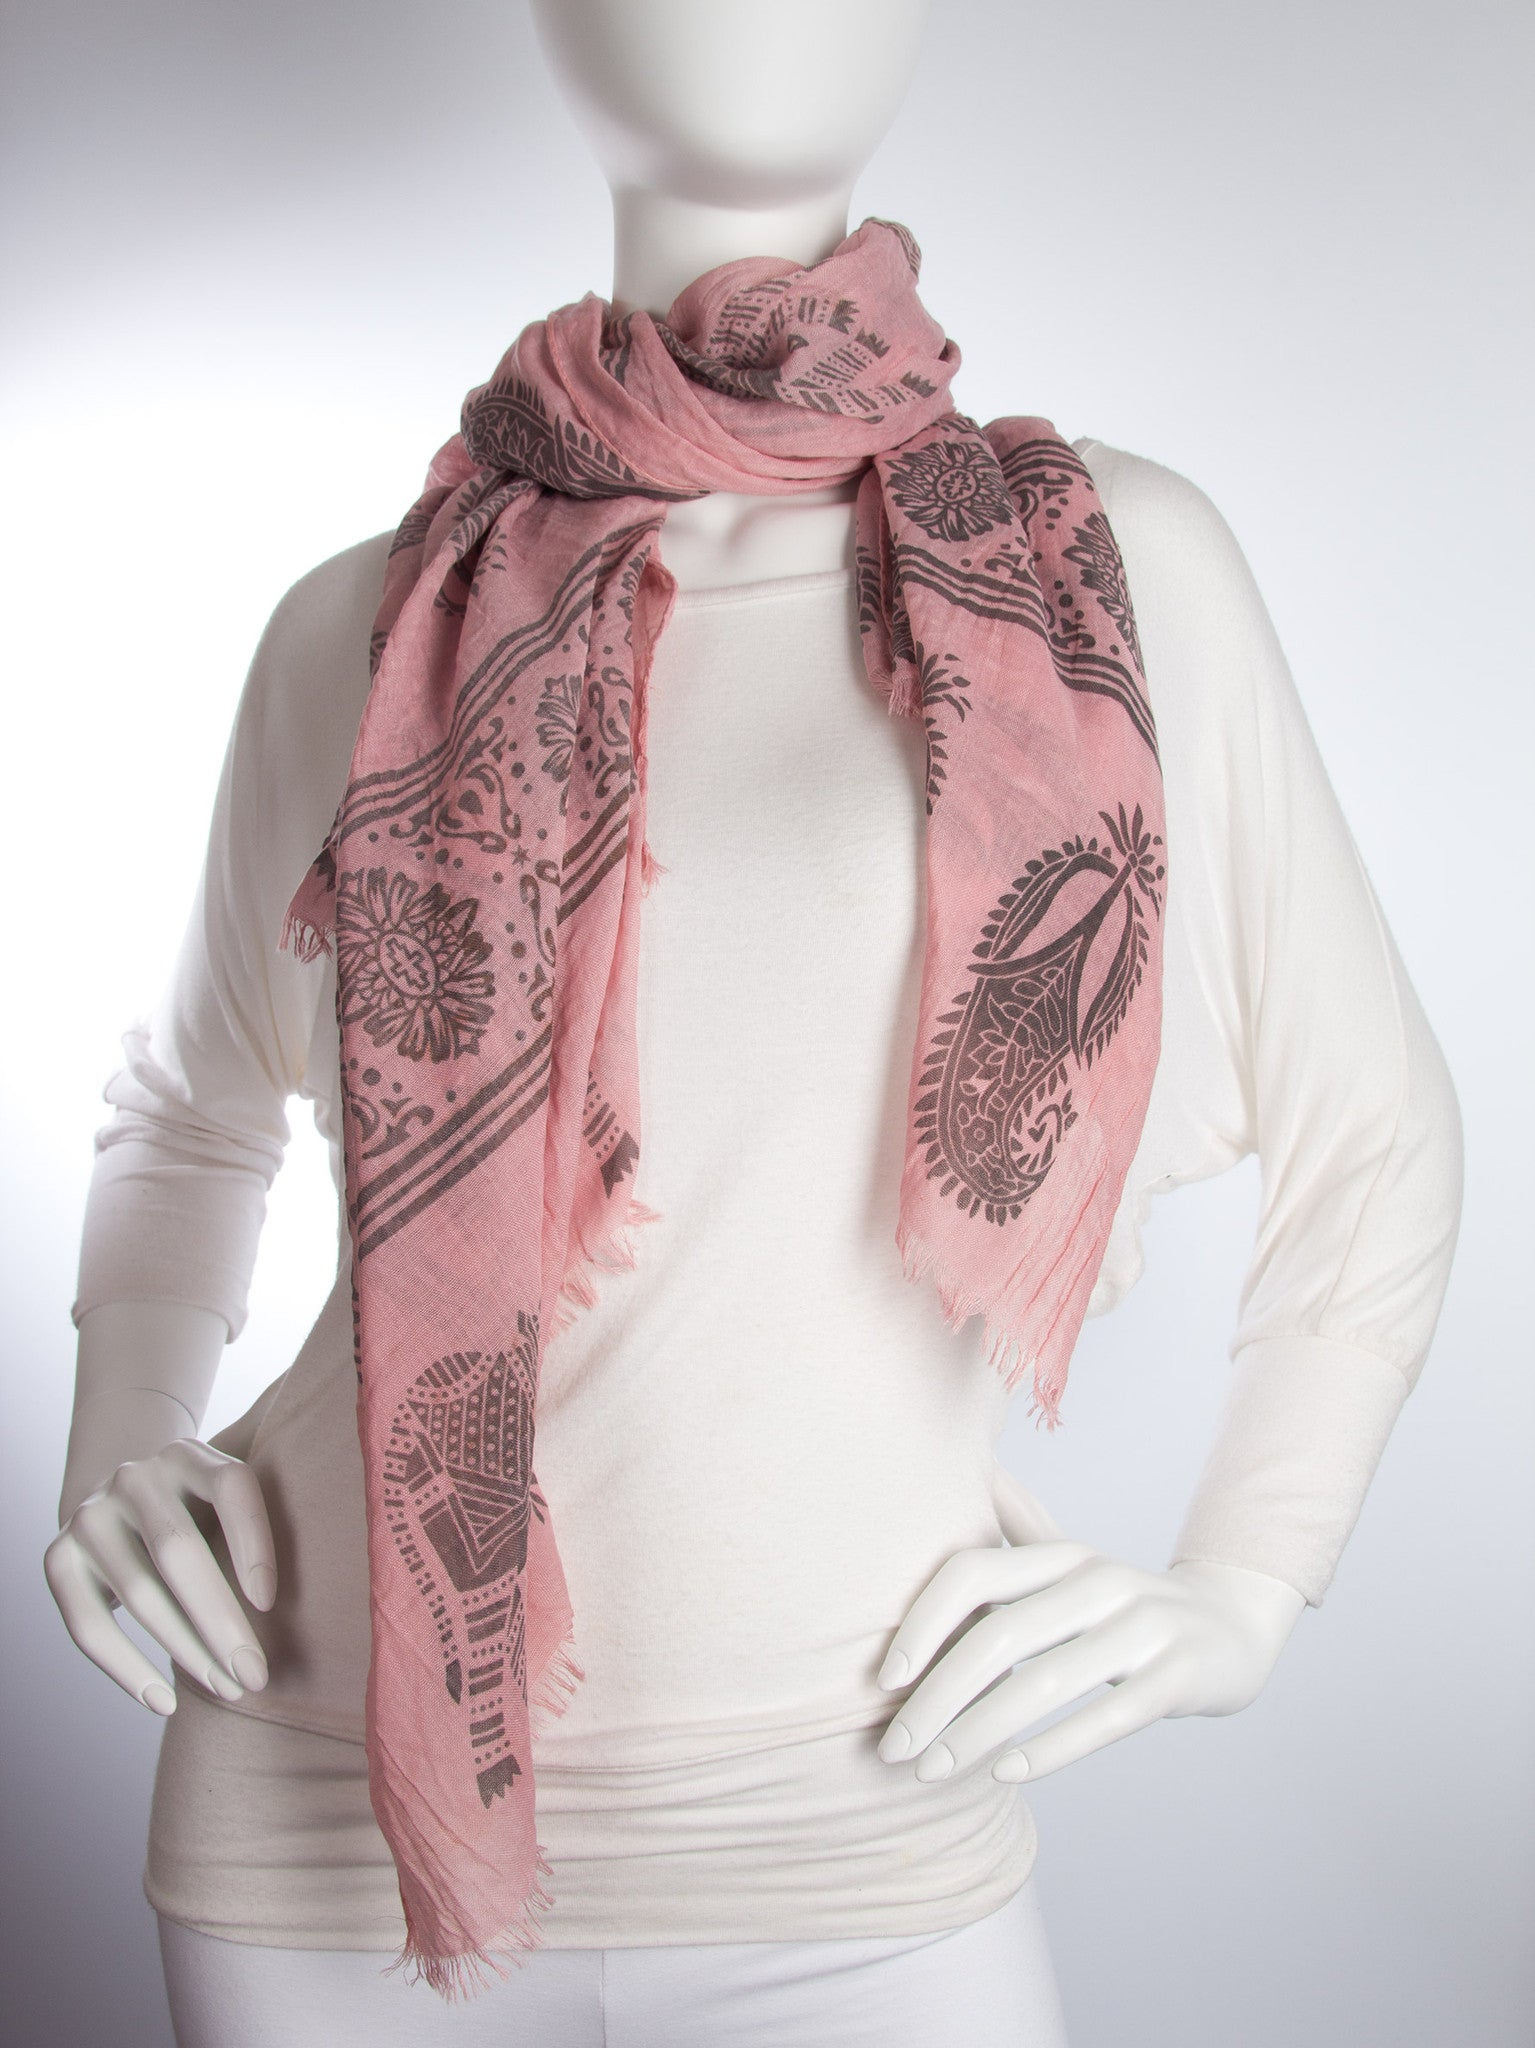 Scarves - Gajai Shawl,100% Cotton Paisley Indian Elephant Print Scarf -() Bohomonde  - 5